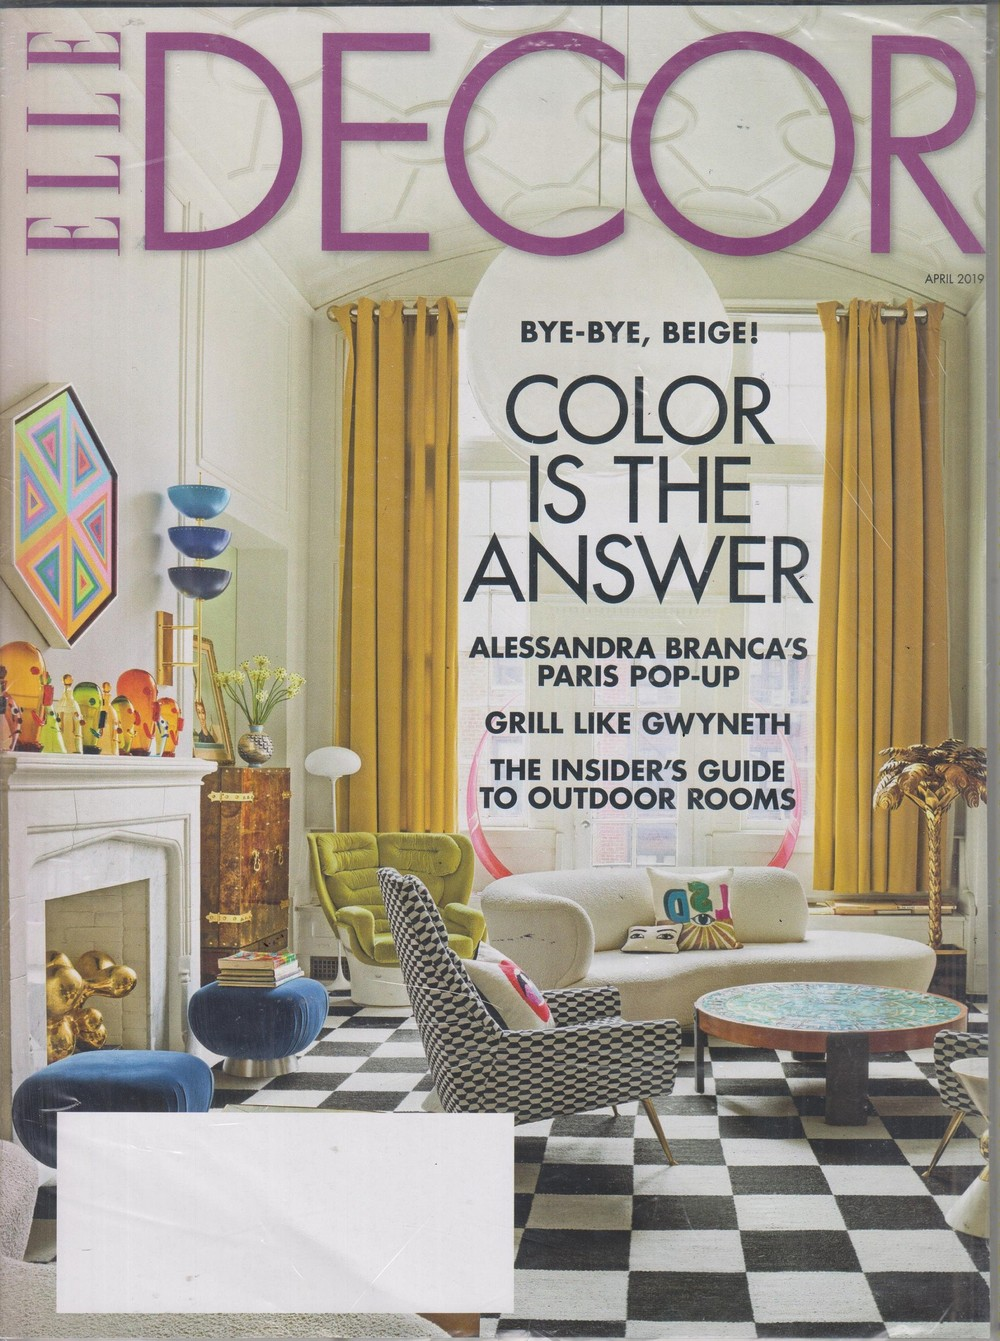 Discover the Best Interior Design Magazines To Follow On Pinterest interior design magazines Discover the Best Interior Design Magazines To Follow On Pinterest Discover the Best Interior Design Magazines To Follow On Pinterest 6